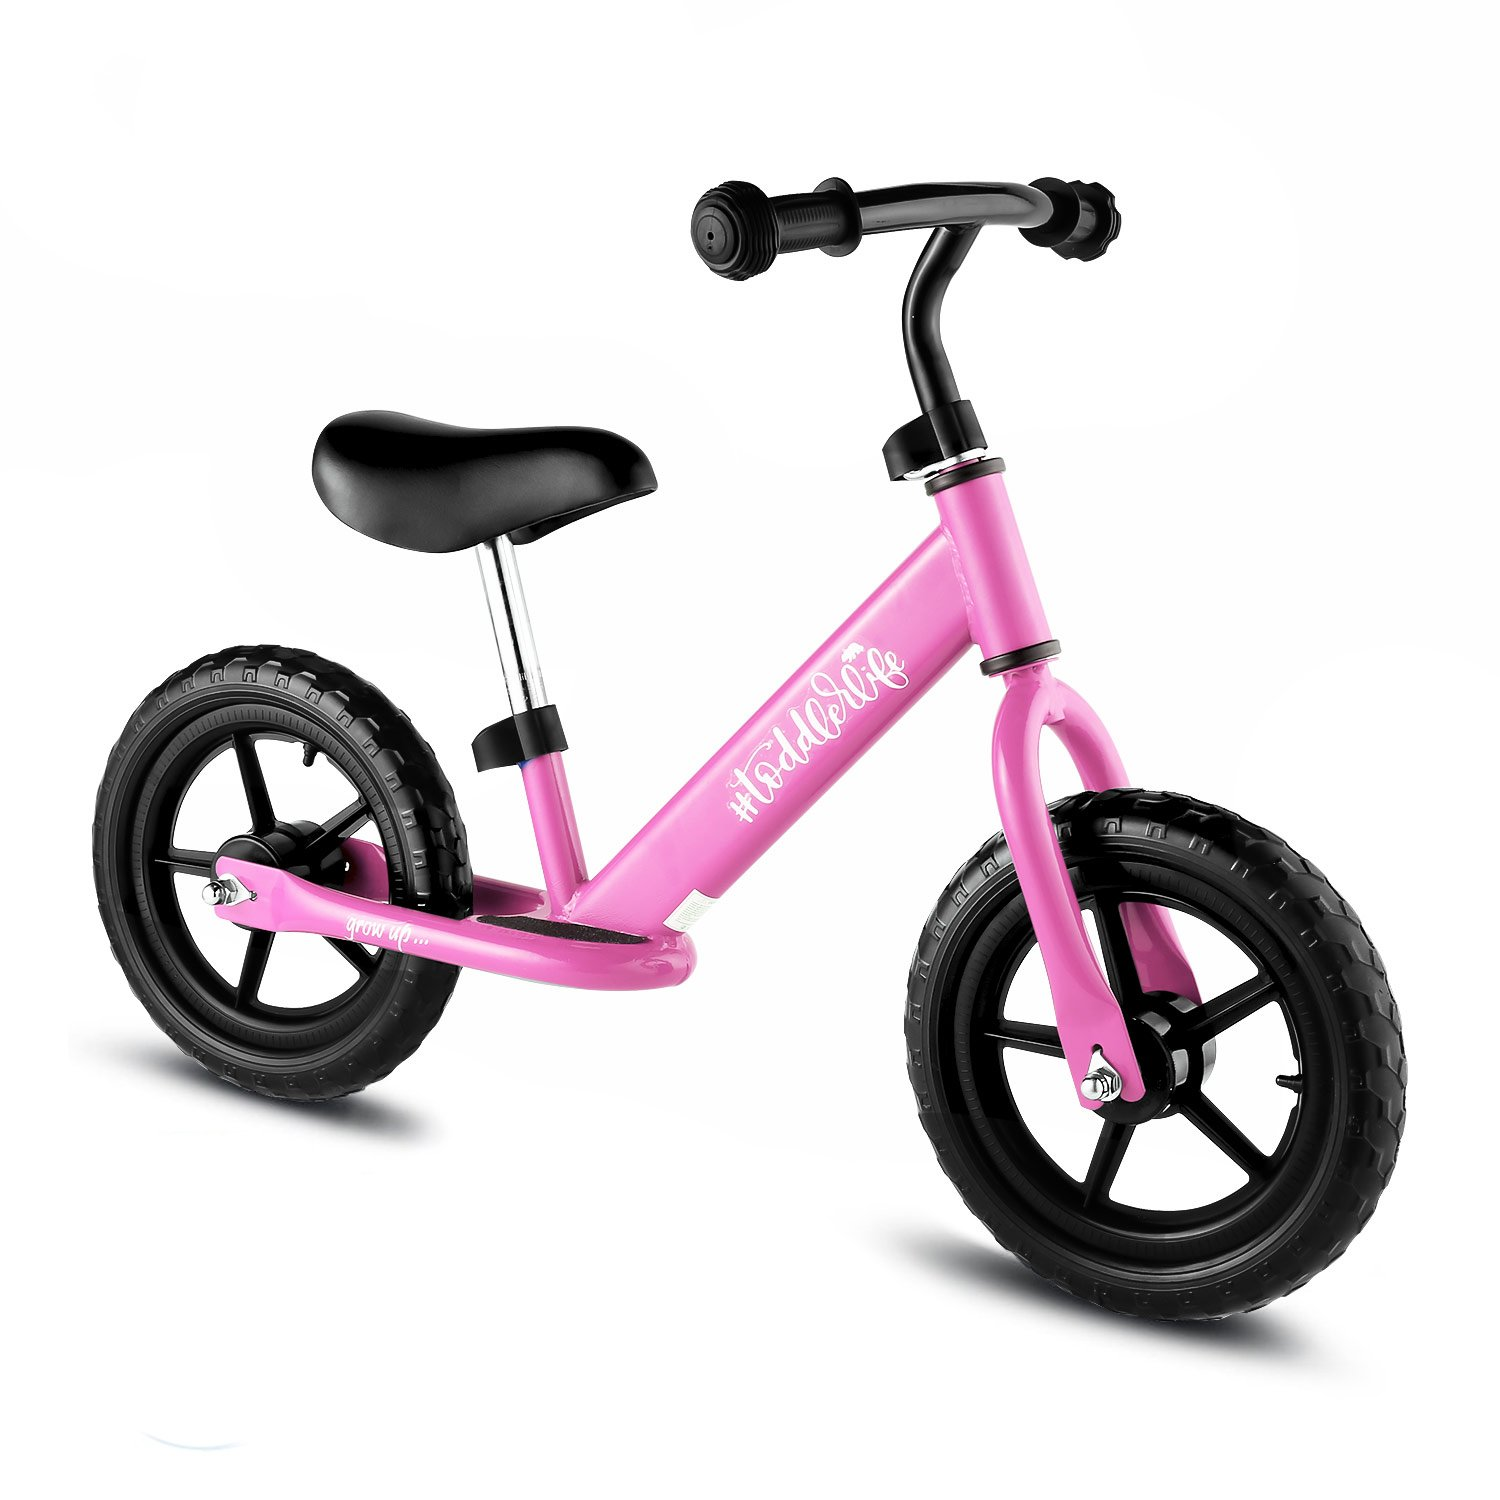 BIKFUN Balance Bike for Kids, No Pedal Traning Children Cycles with Adjustable Handlebar and Seat, Toddler Walking Bicycle Fits Ages 18 Months to 6 Years